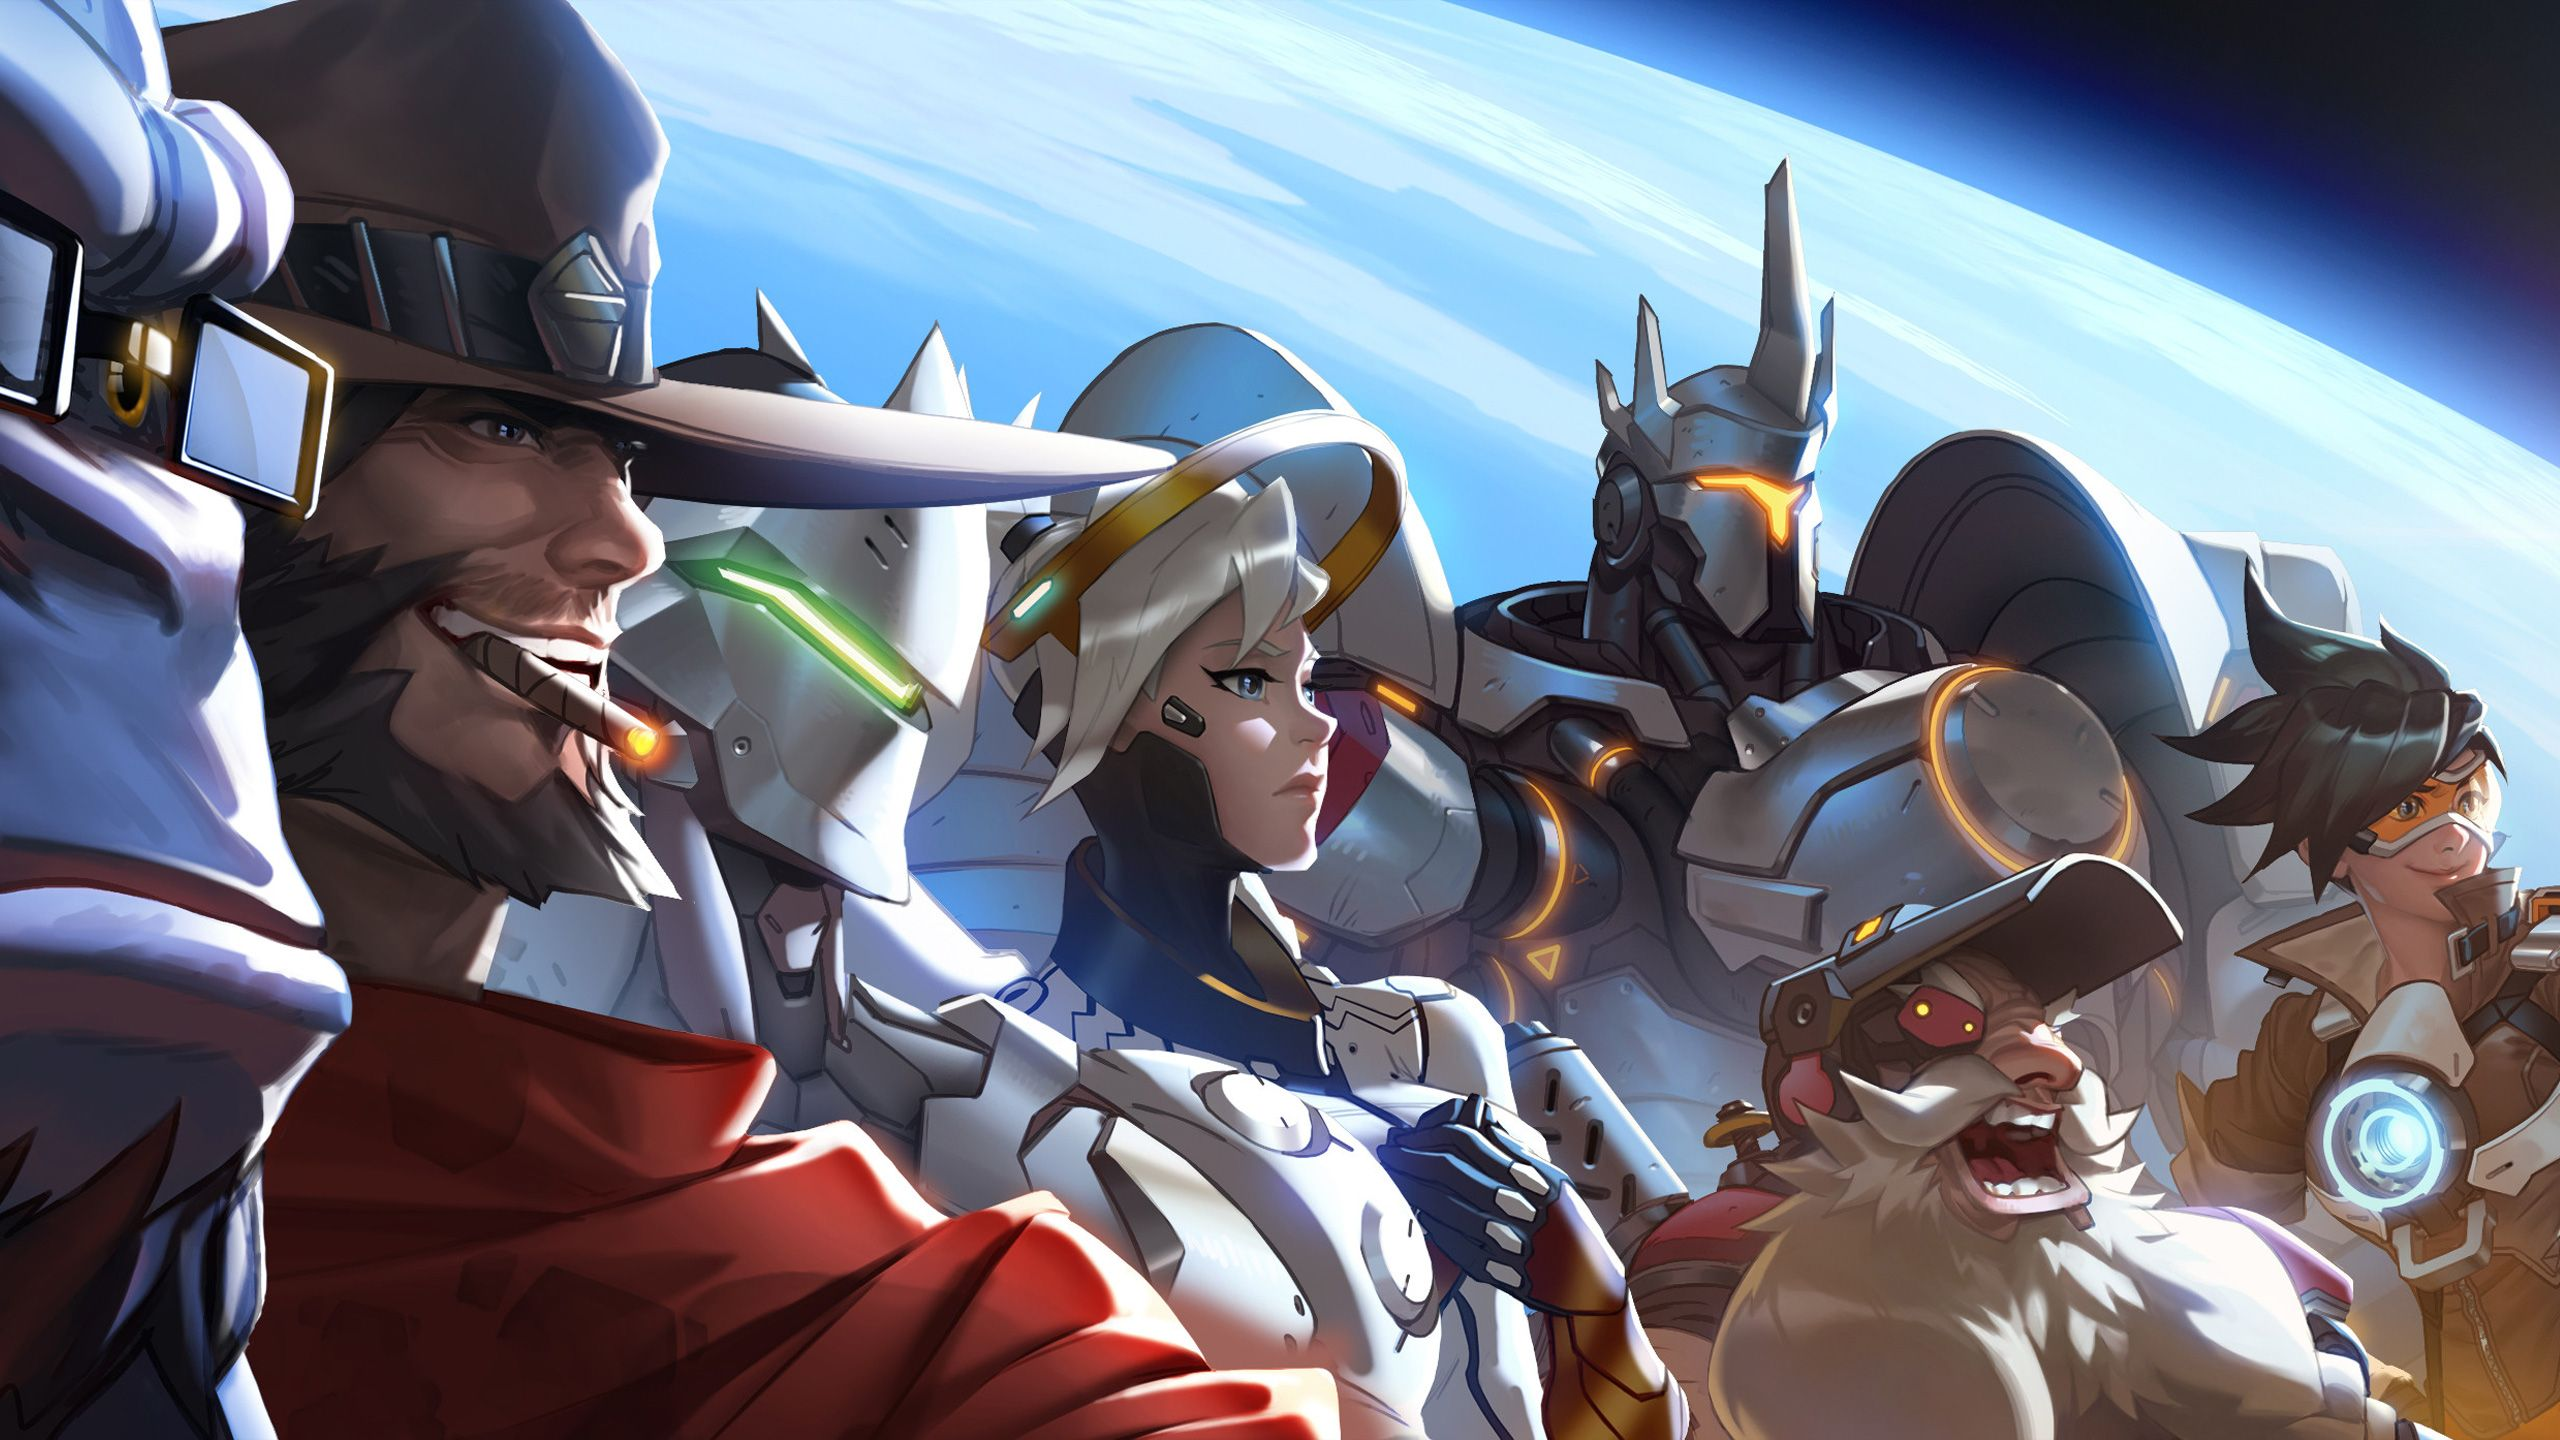 Overwatch Game Wallpaper Characters 2560x1440 Картинки